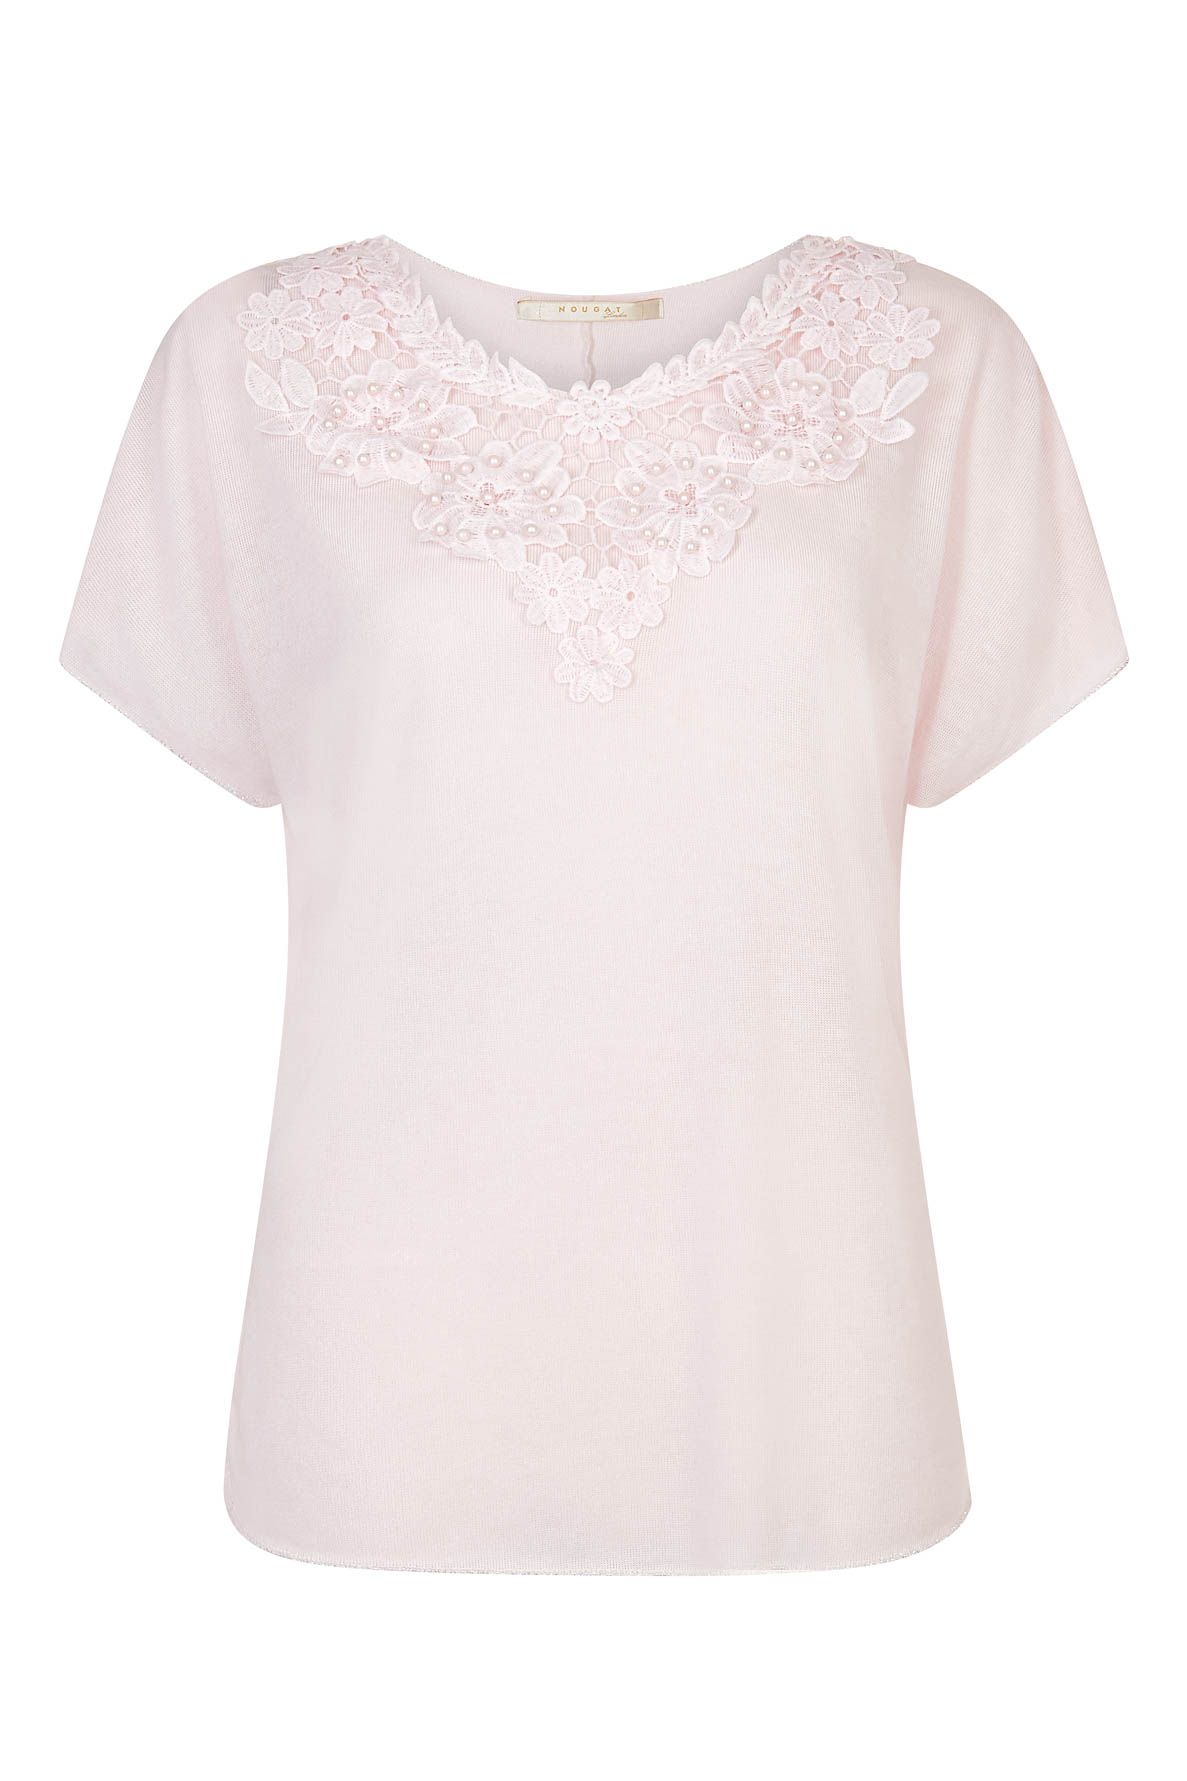 Nougat London Tulip Embroidered Top, Pink